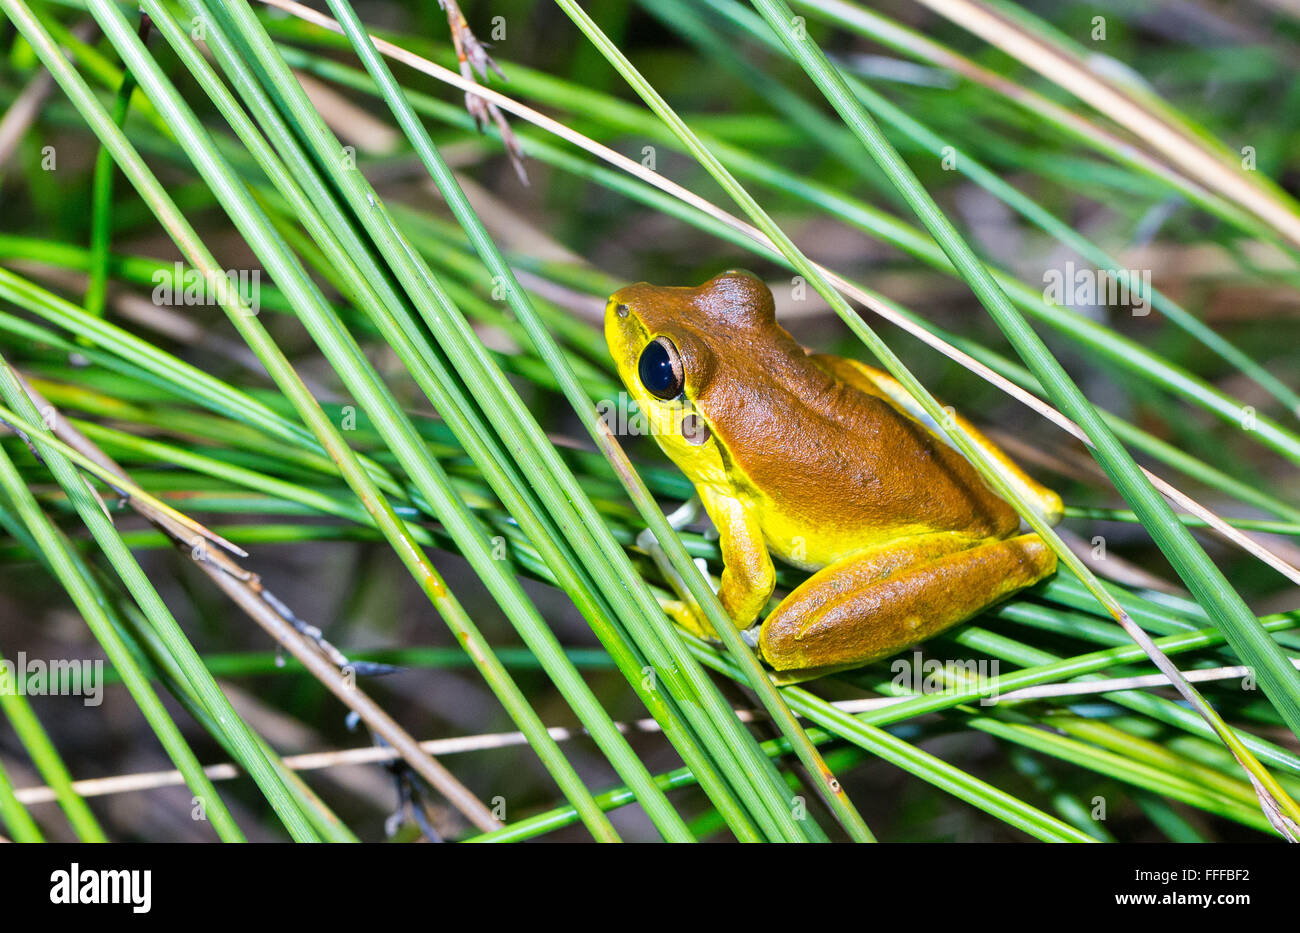 Male Stony Creek Frog (Litoria wilcoxii), NSW, Australia - Stock Image